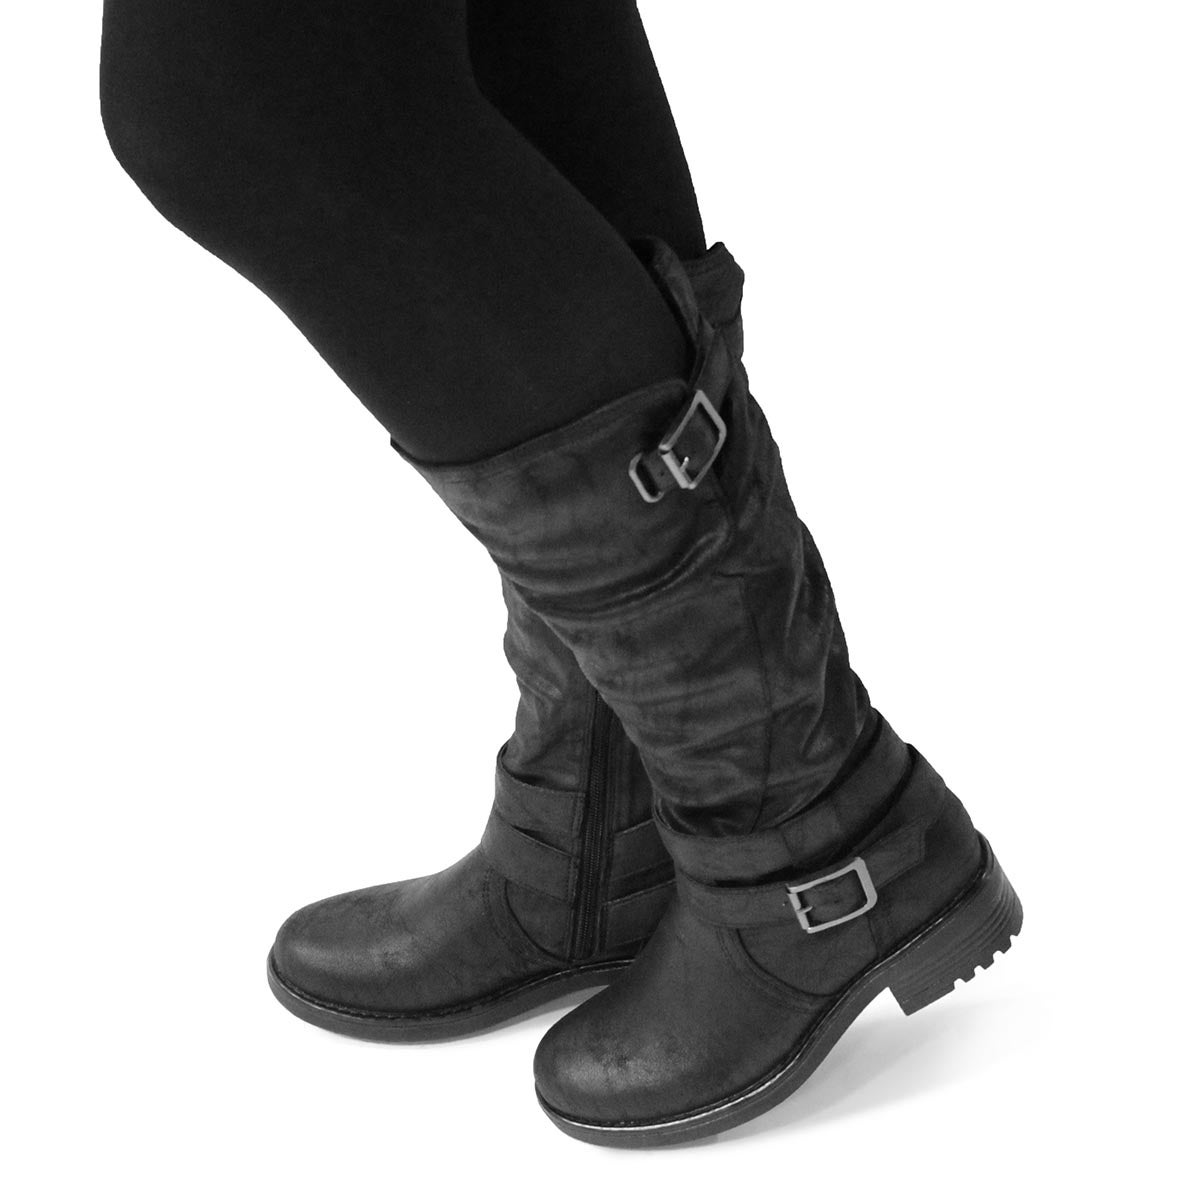 Totes GIRLS TANYA //BLACK COLD WEATHER BOOTS ONE SIZE  NEW IN BOX